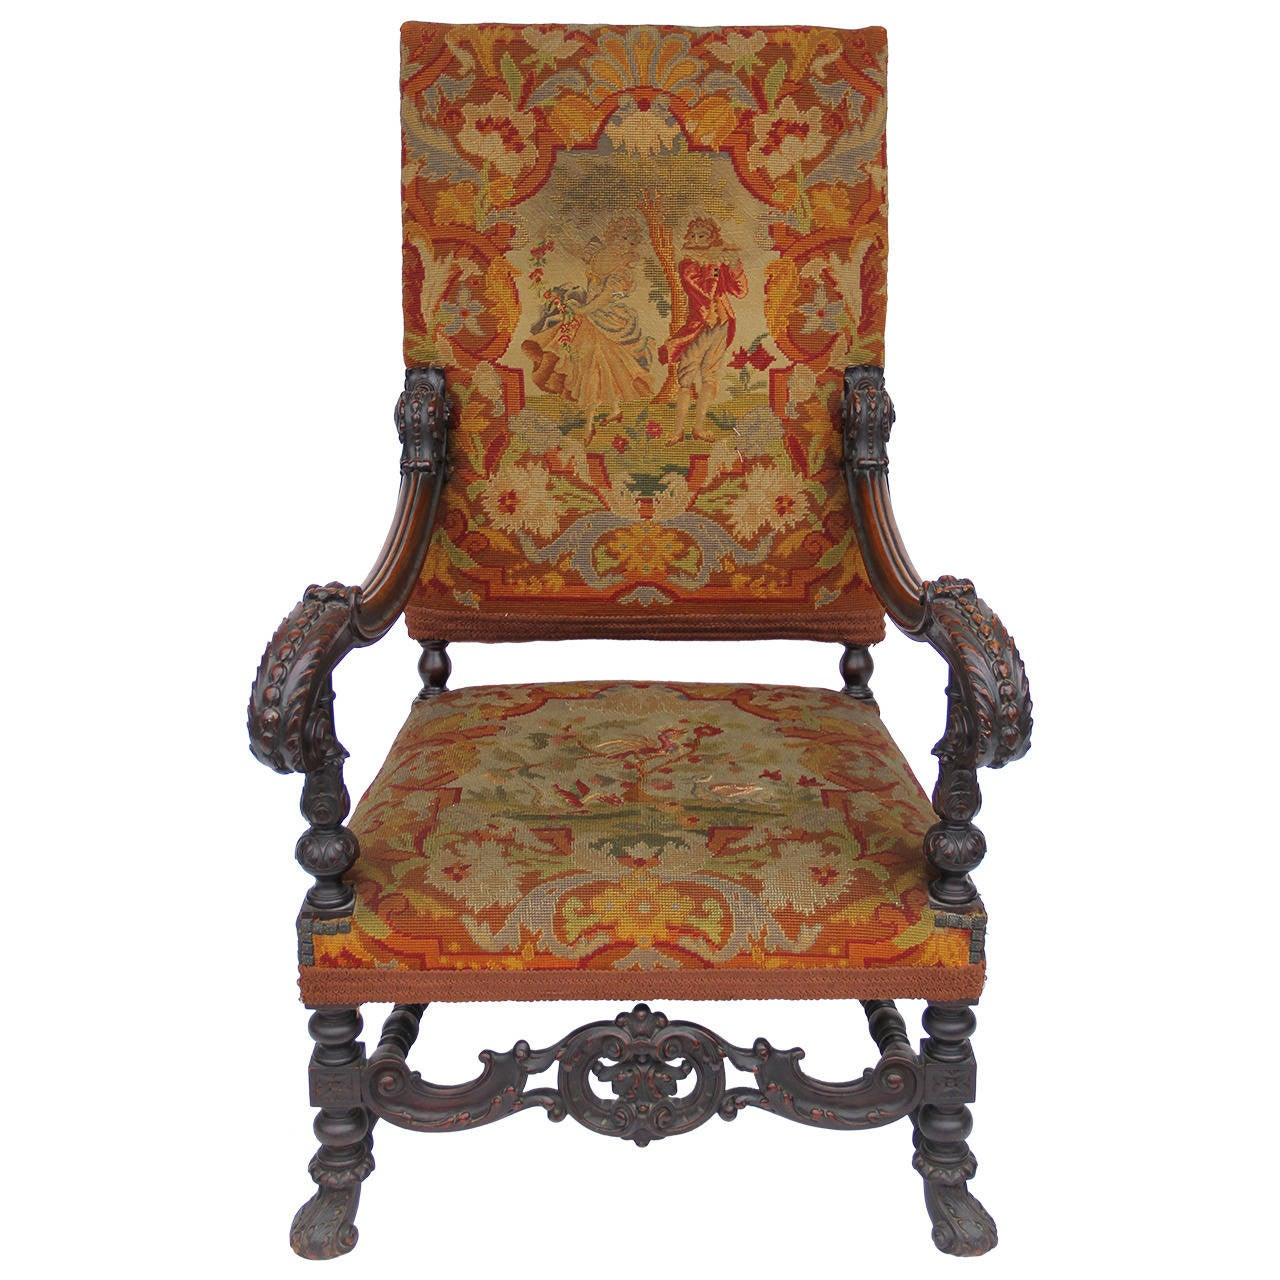 Vintage Armchair Styles: Antique Louis XIV Style Carved Fauteuil High-Back Armchair